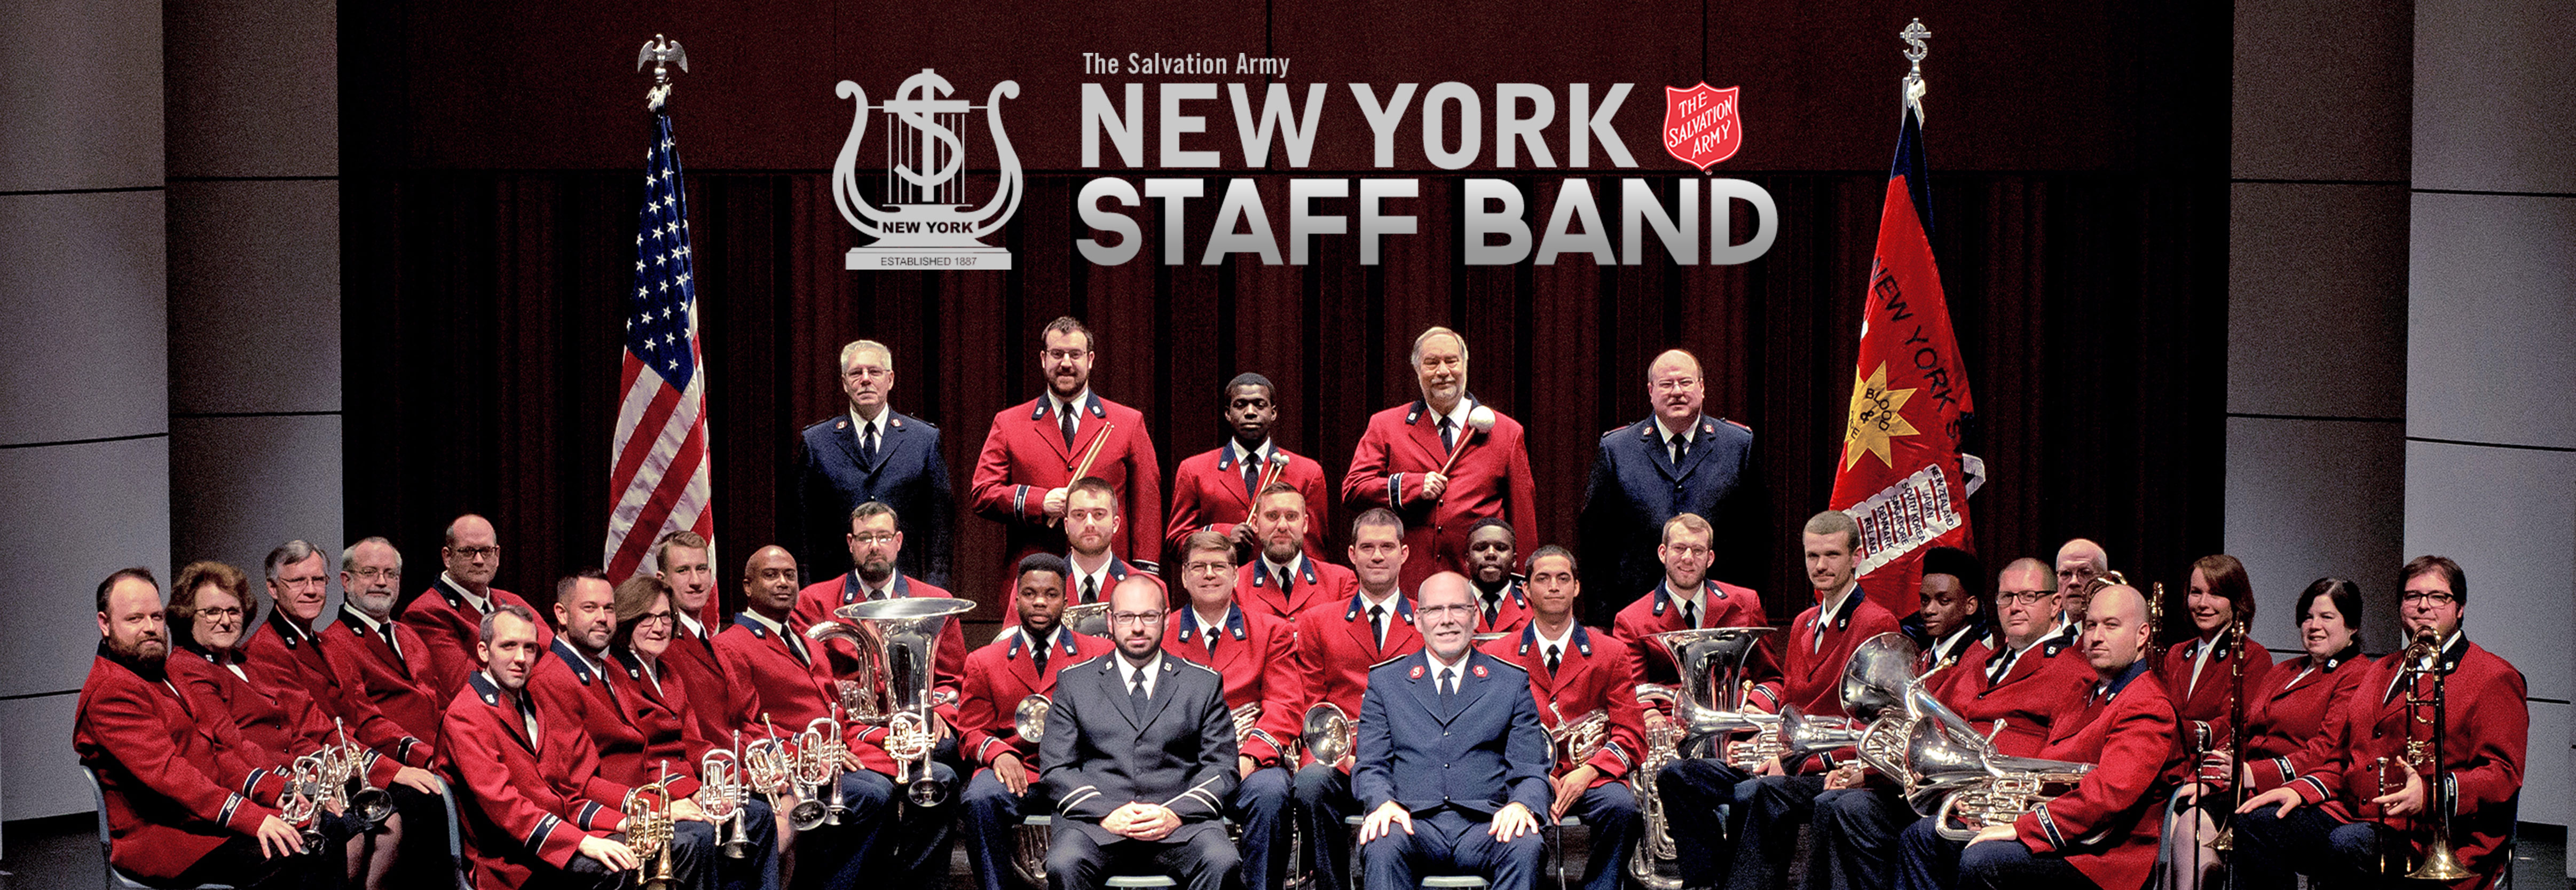 Salvation Army New York Staff Band